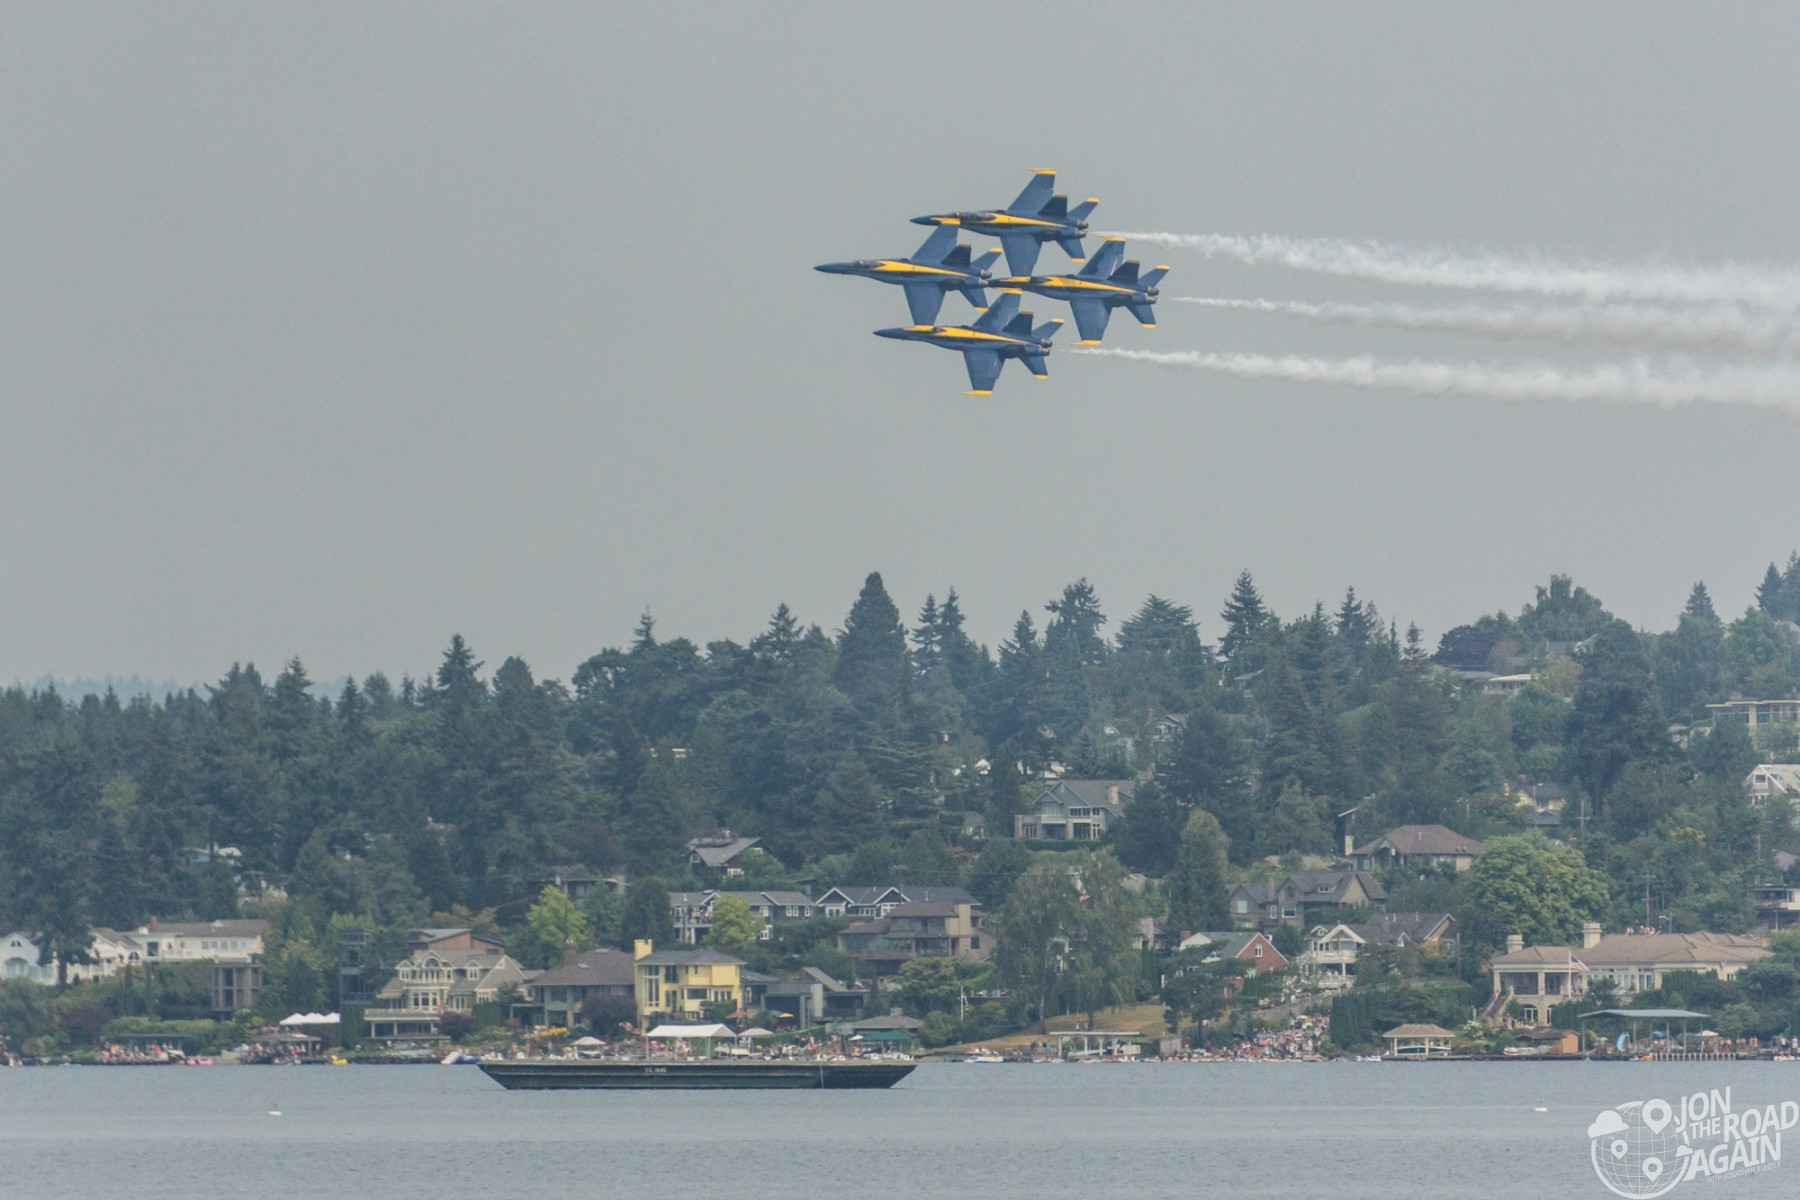 Seafair Blue Angels